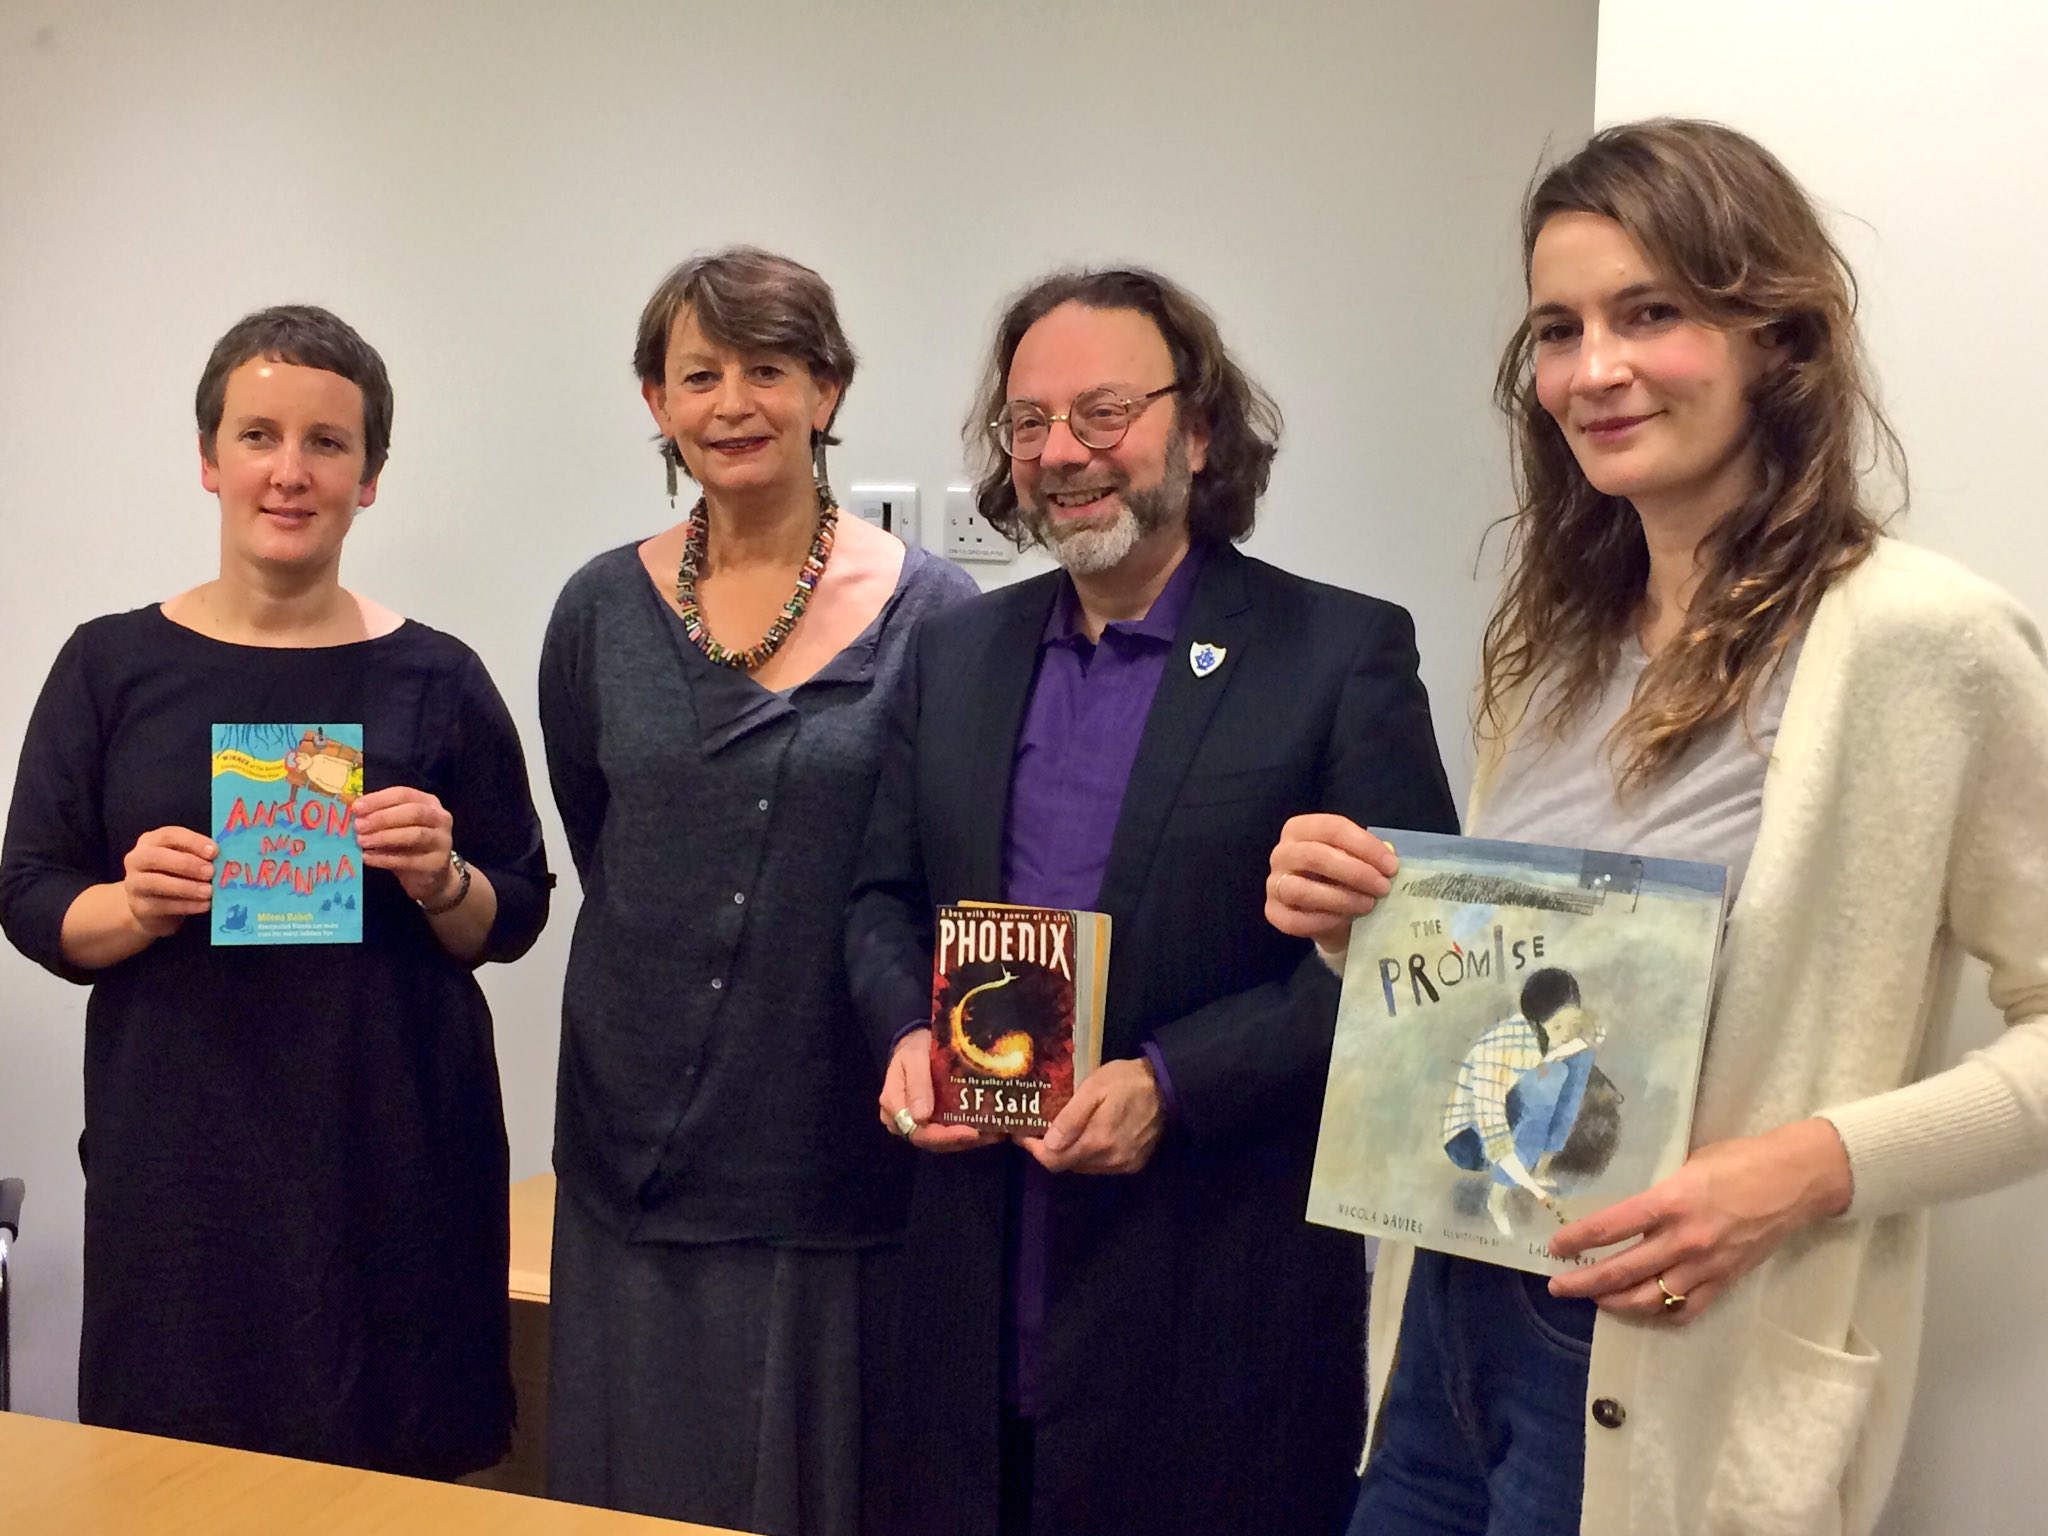 Our wonderful #IBBYHonours authors & illustrator showing off their work. Looking forward to hearing them speak! https://t.co/723Bn7FnhW